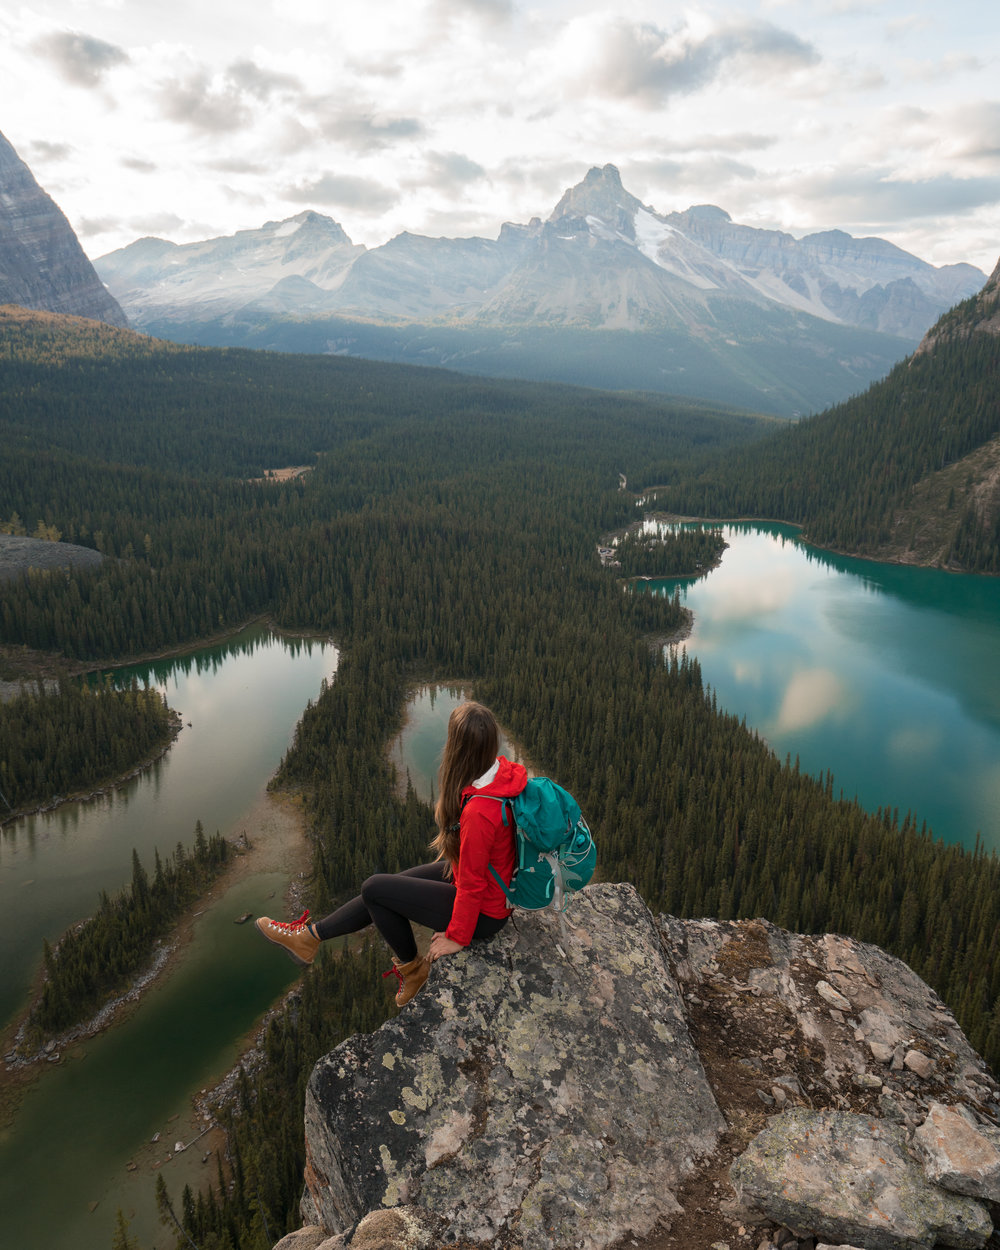 Opabin Prospect overlooking Mary Lakes and Lake O'Hara, photo / Ryan Clennett